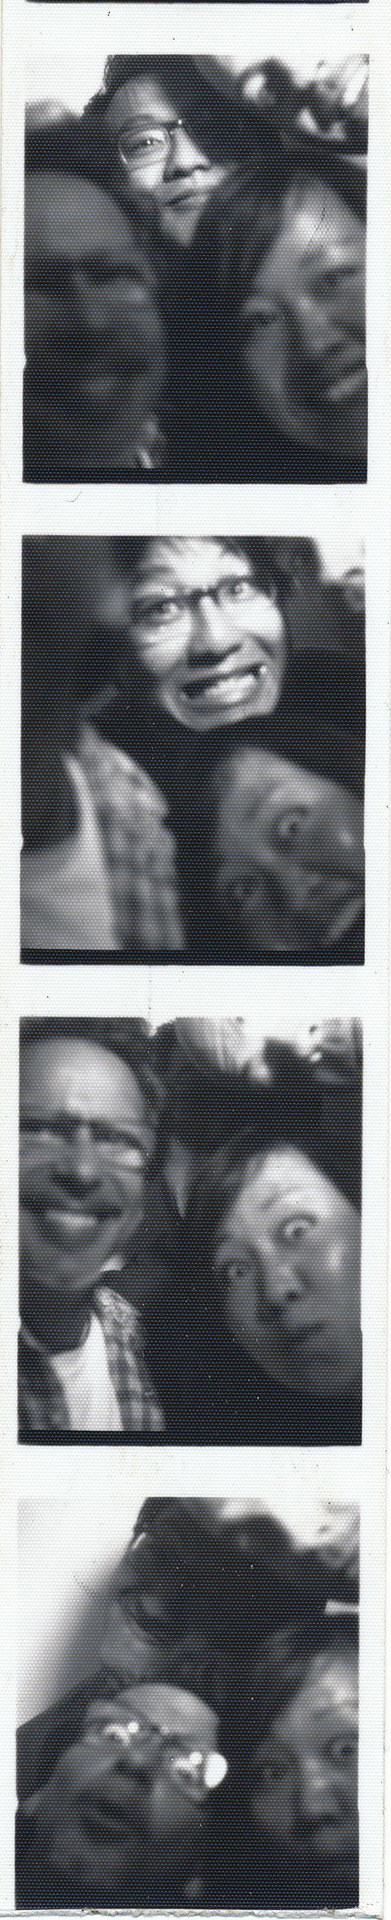 Bubby's Photo Booth picture from Nicole's Birthday!